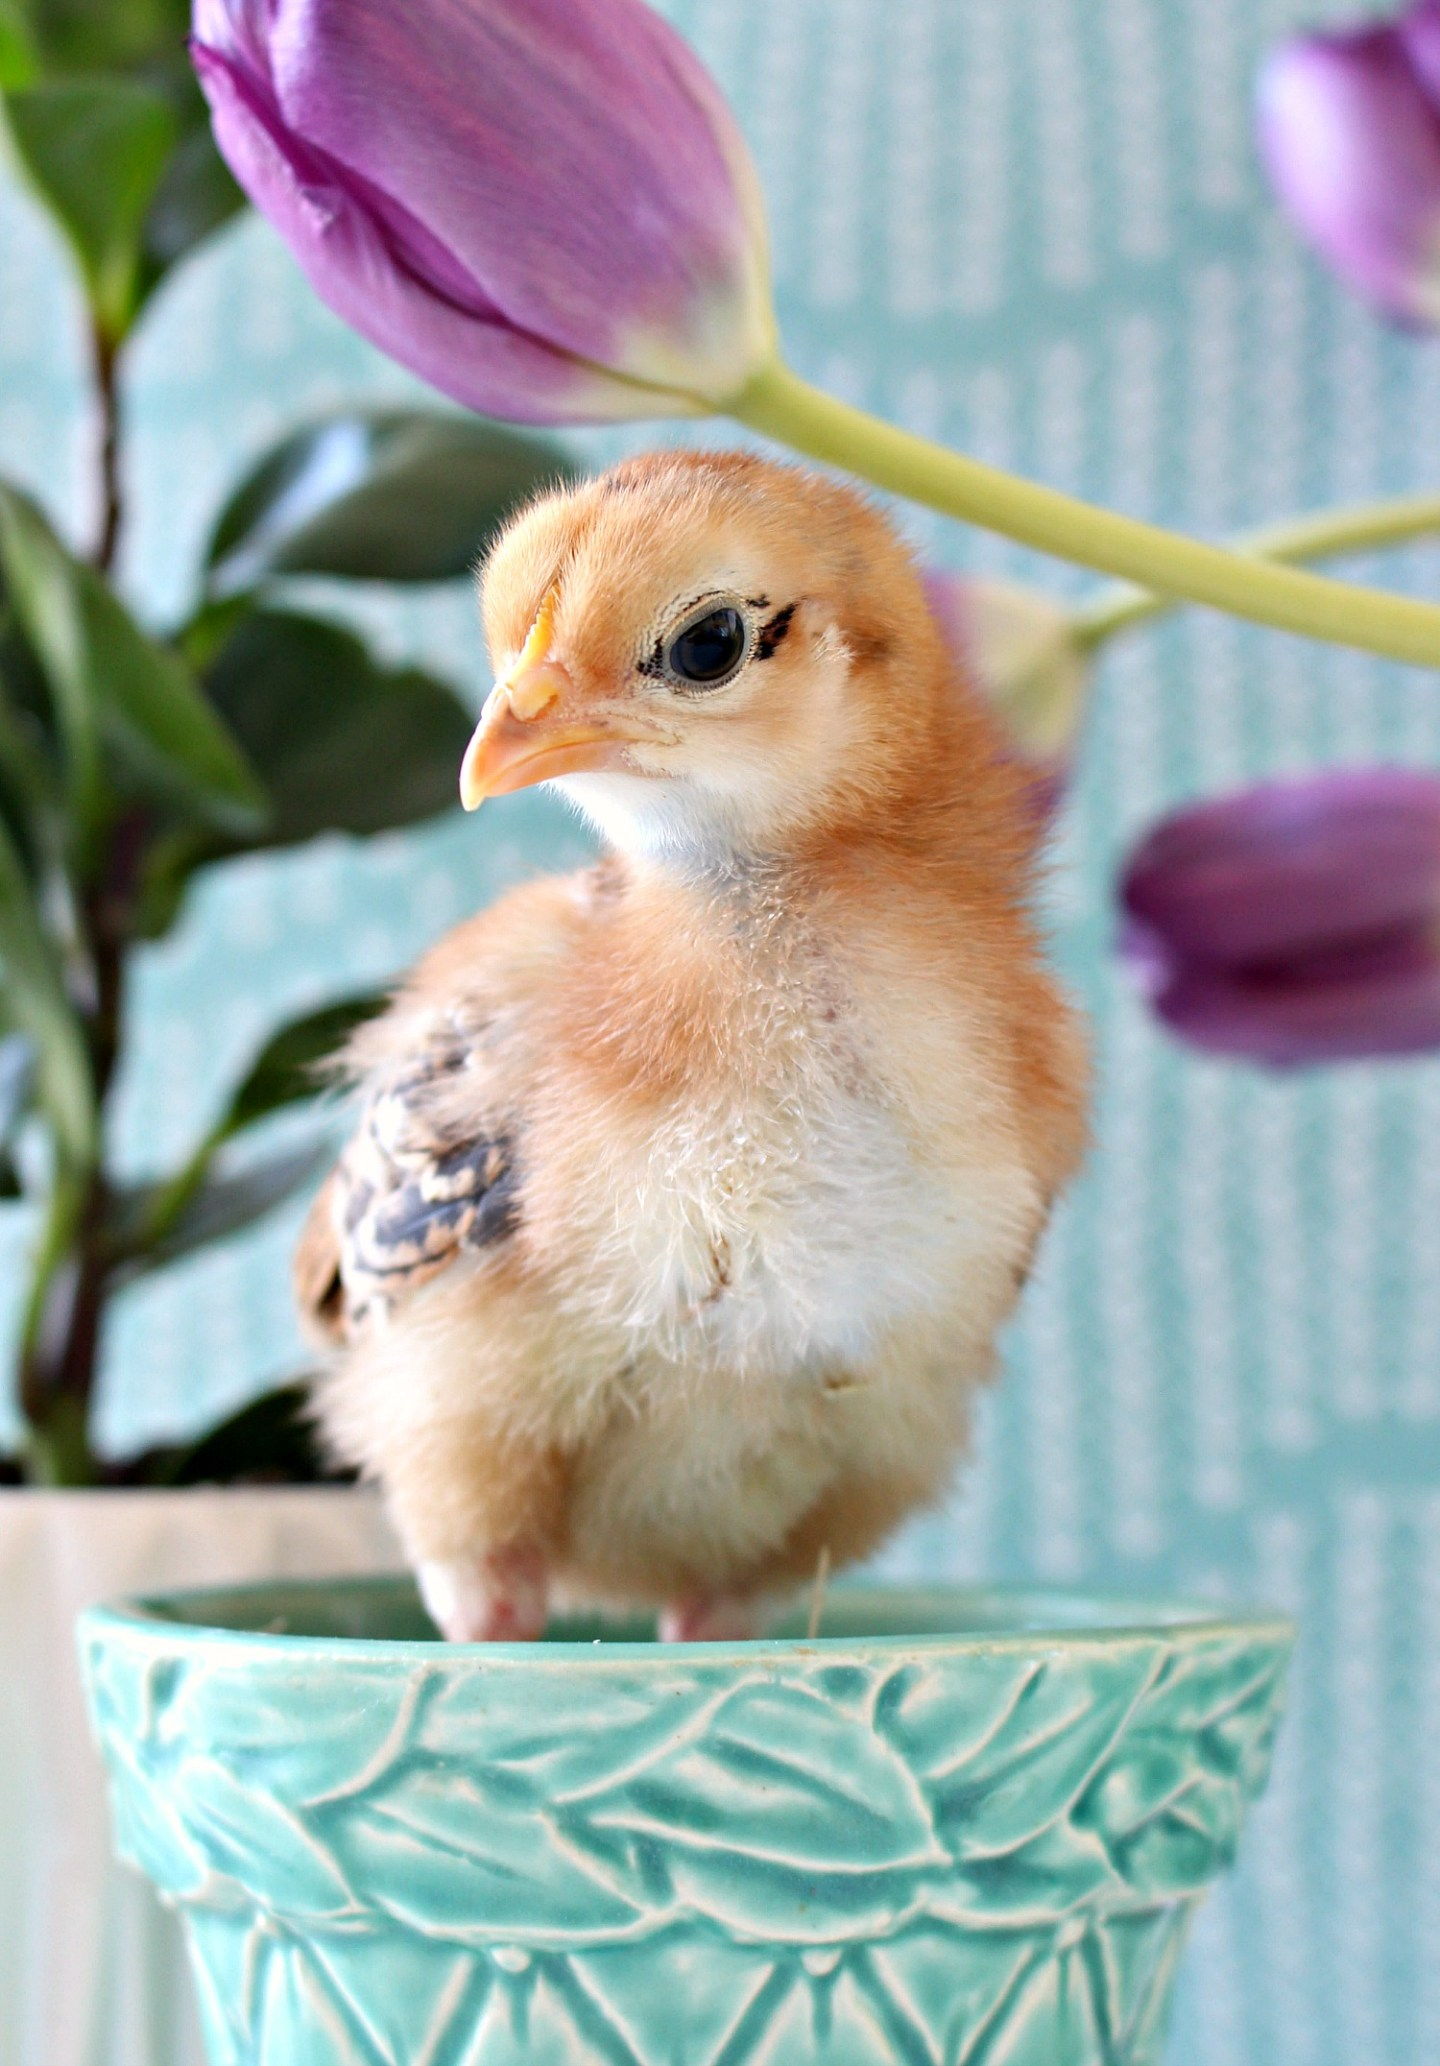 Photos of Baby Chicks